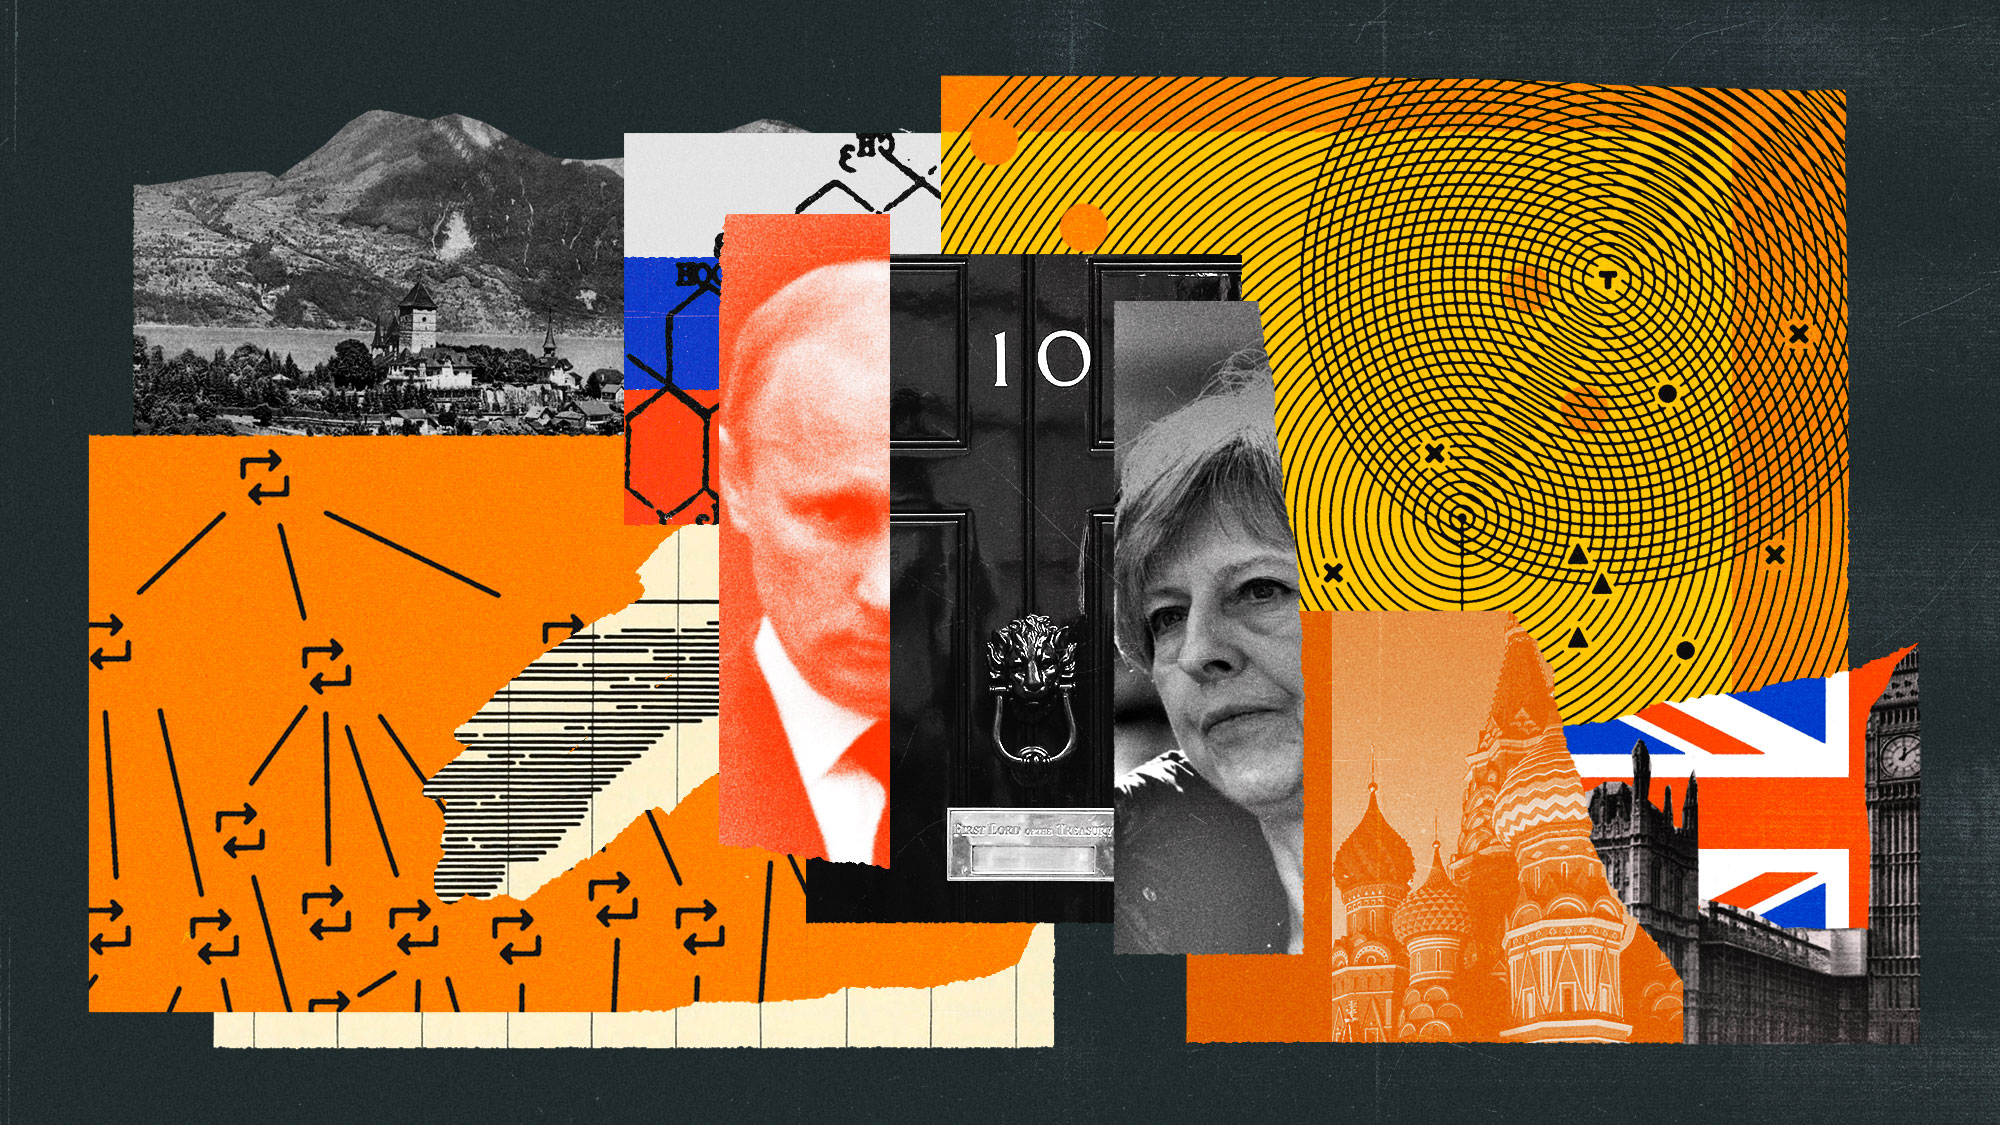 The Atlantic - Britain's Secret War With Russia opener illustration